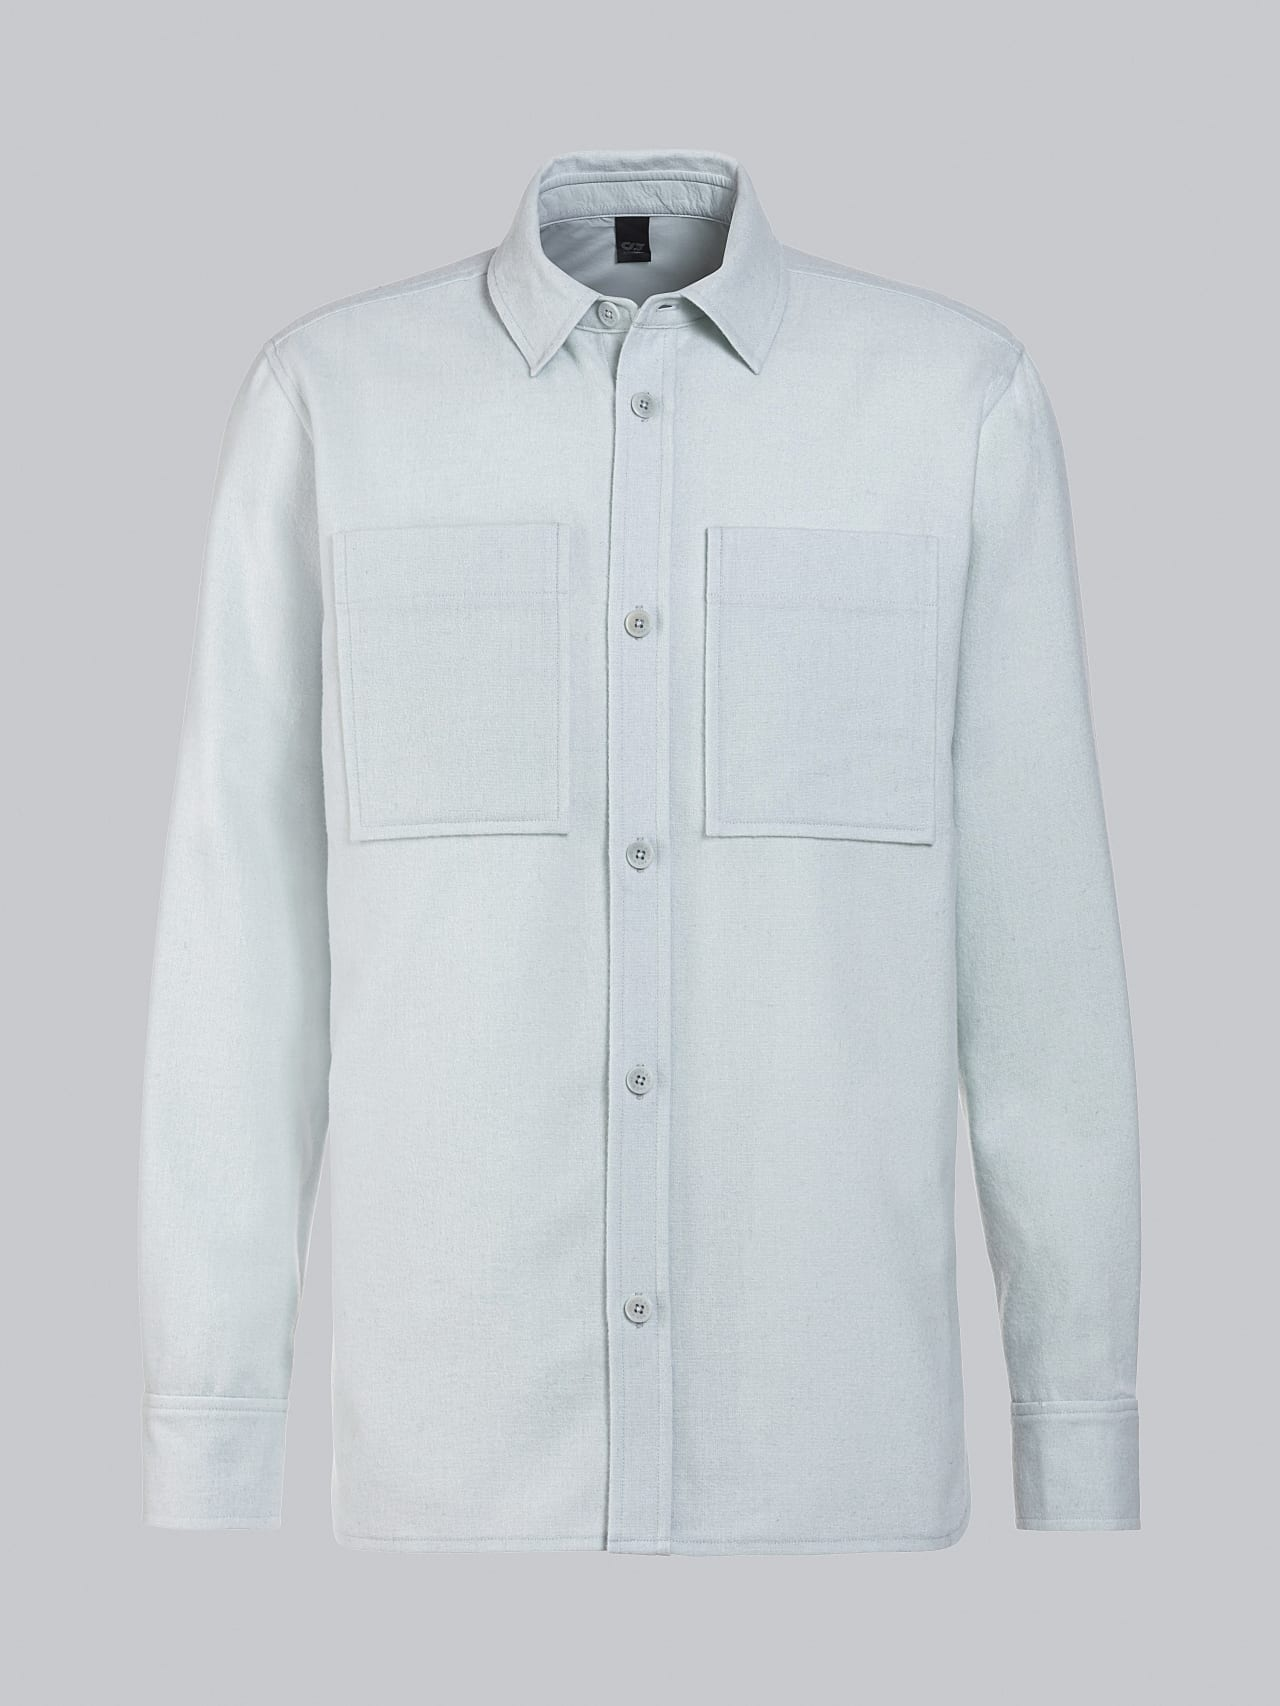 WOVER V1.Y5.02 Wool Over-Shirt Pale Blue  Back Alpha Tauri